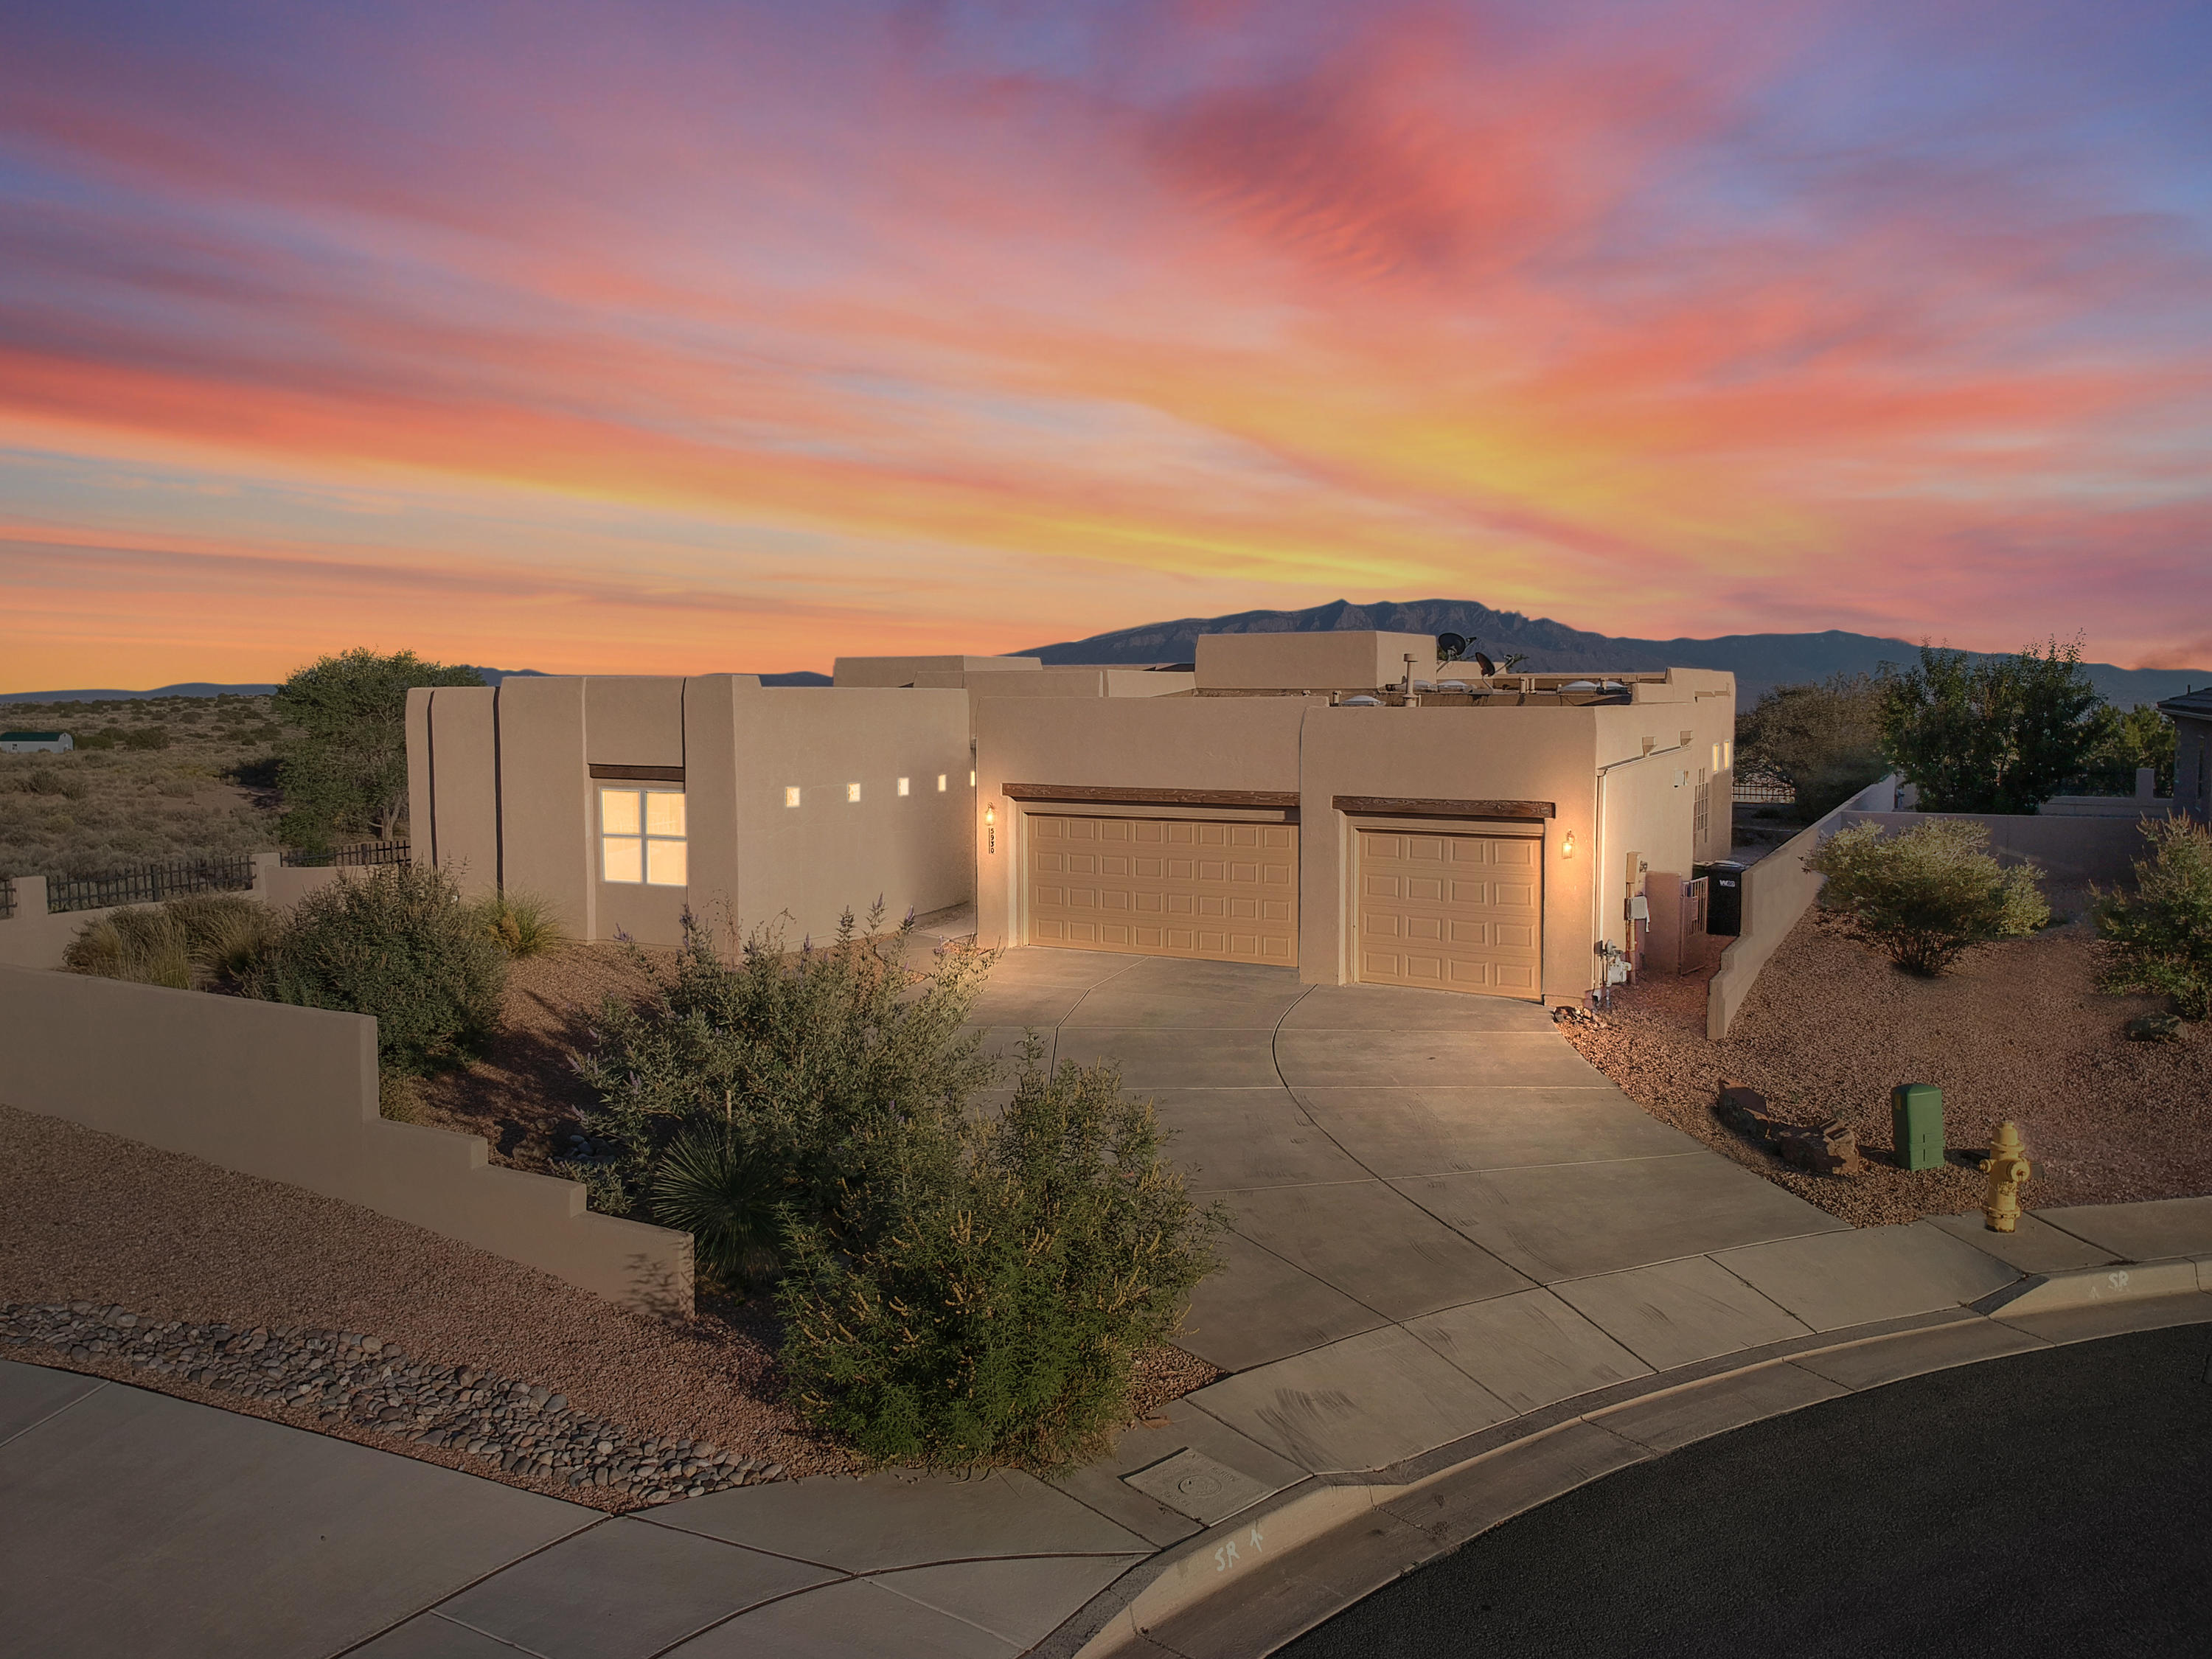 Welcome home to this gorgeous Scott Patrick home in the Vista Manzano development in lovely Mariposa. Let the stunning entryway lead you into the beautiful, large curved living room with picture frame windows showcasing perfect mountain VIEWS and a cozy fireplace for the cool upcoming Fall and Winter days ahead. The spacious kitchen is a cook's delight featuring a large island, eat-in nook, and plenty of cabinetry. Enjoy quaint privacy via the master bedroom courtesy of the split-bedroom design. The fully tiled master bath comes complete with a walk-in closet and jacuzzi tub, and is adjacent to the spacious utility room. All baths are tiled with picturesque southwest tiled motifs. The home boasts soaring ceilings and many skylights making it light, bright, and airy. The incredible backyard